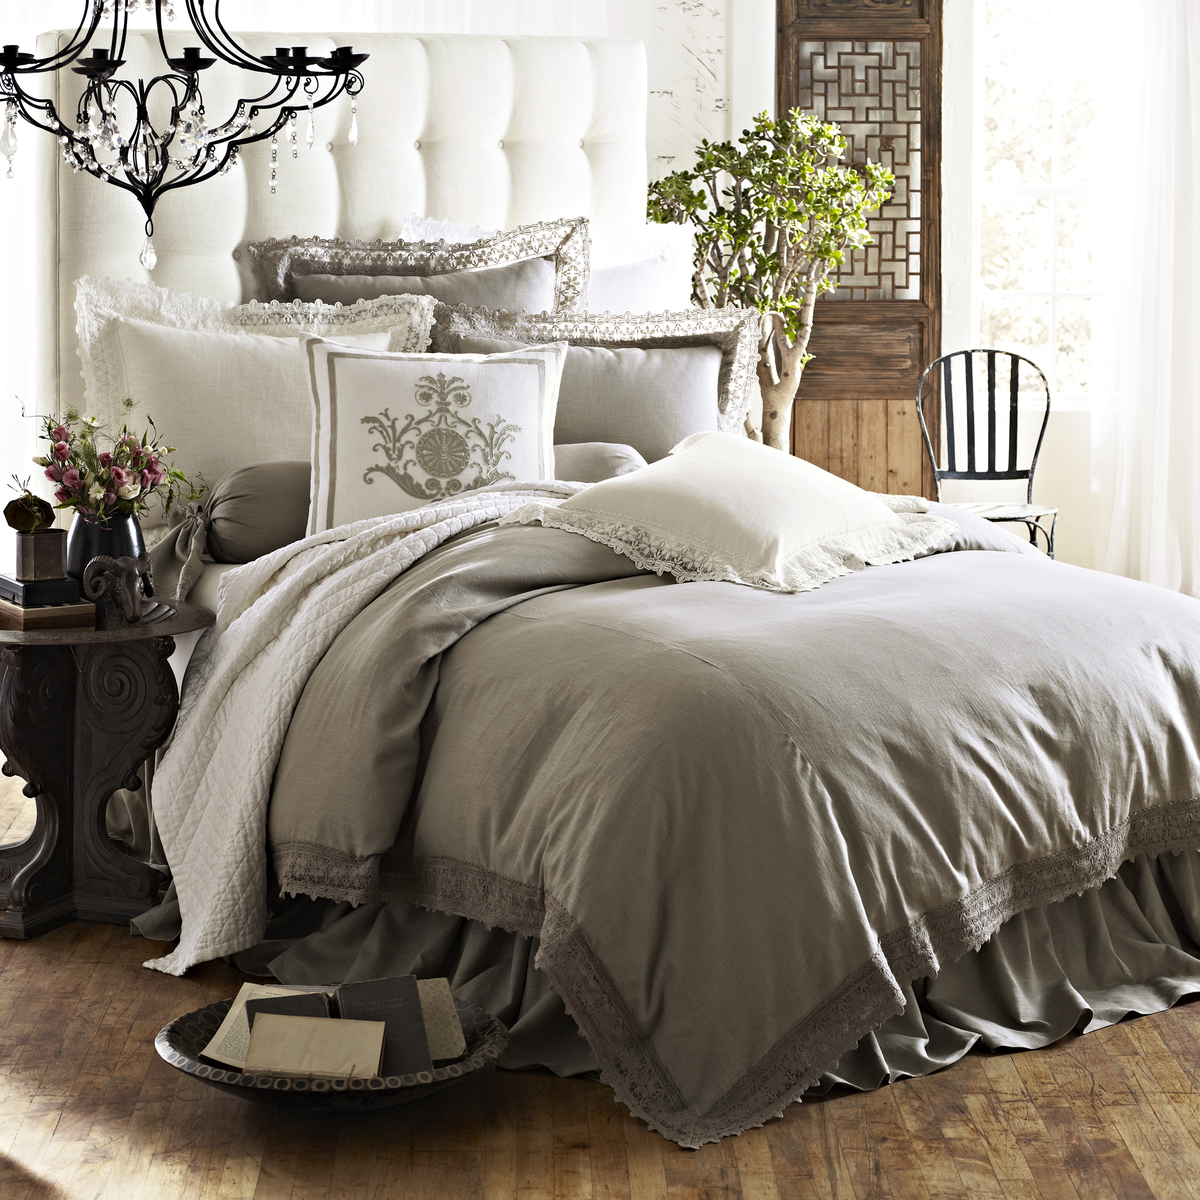 This Is A Relatively New Brand Born In 2002 And Started As Collection Of Unique Decorative Pillows It Uses Luxurious Velvets Linens Silks The